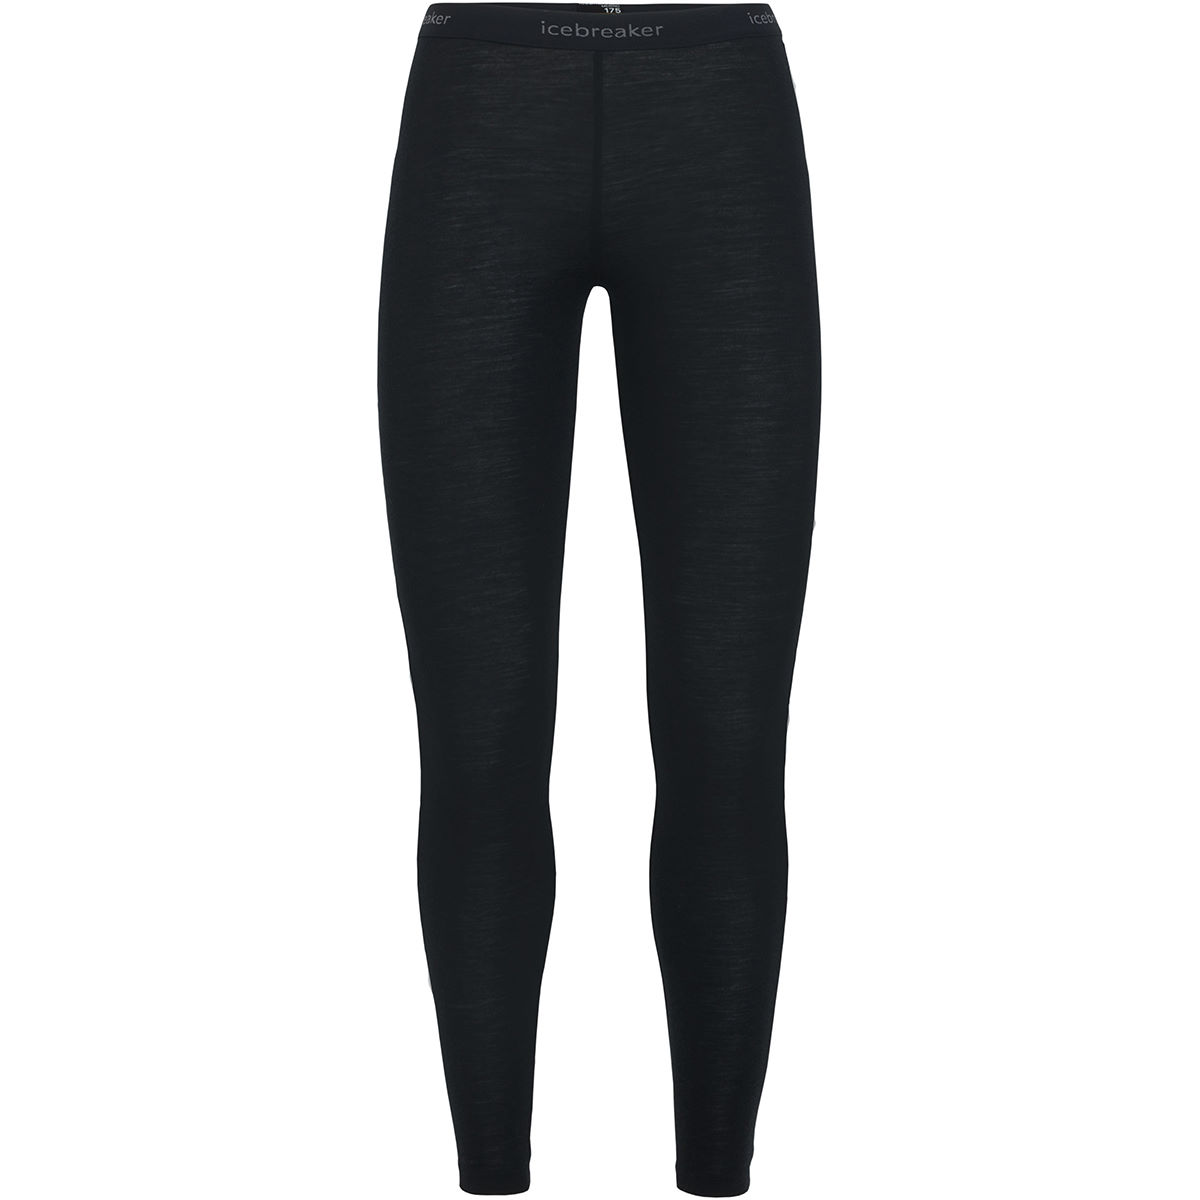 Icebreaker Women's 175 Everyday Merino Leggings - Mallas interiores